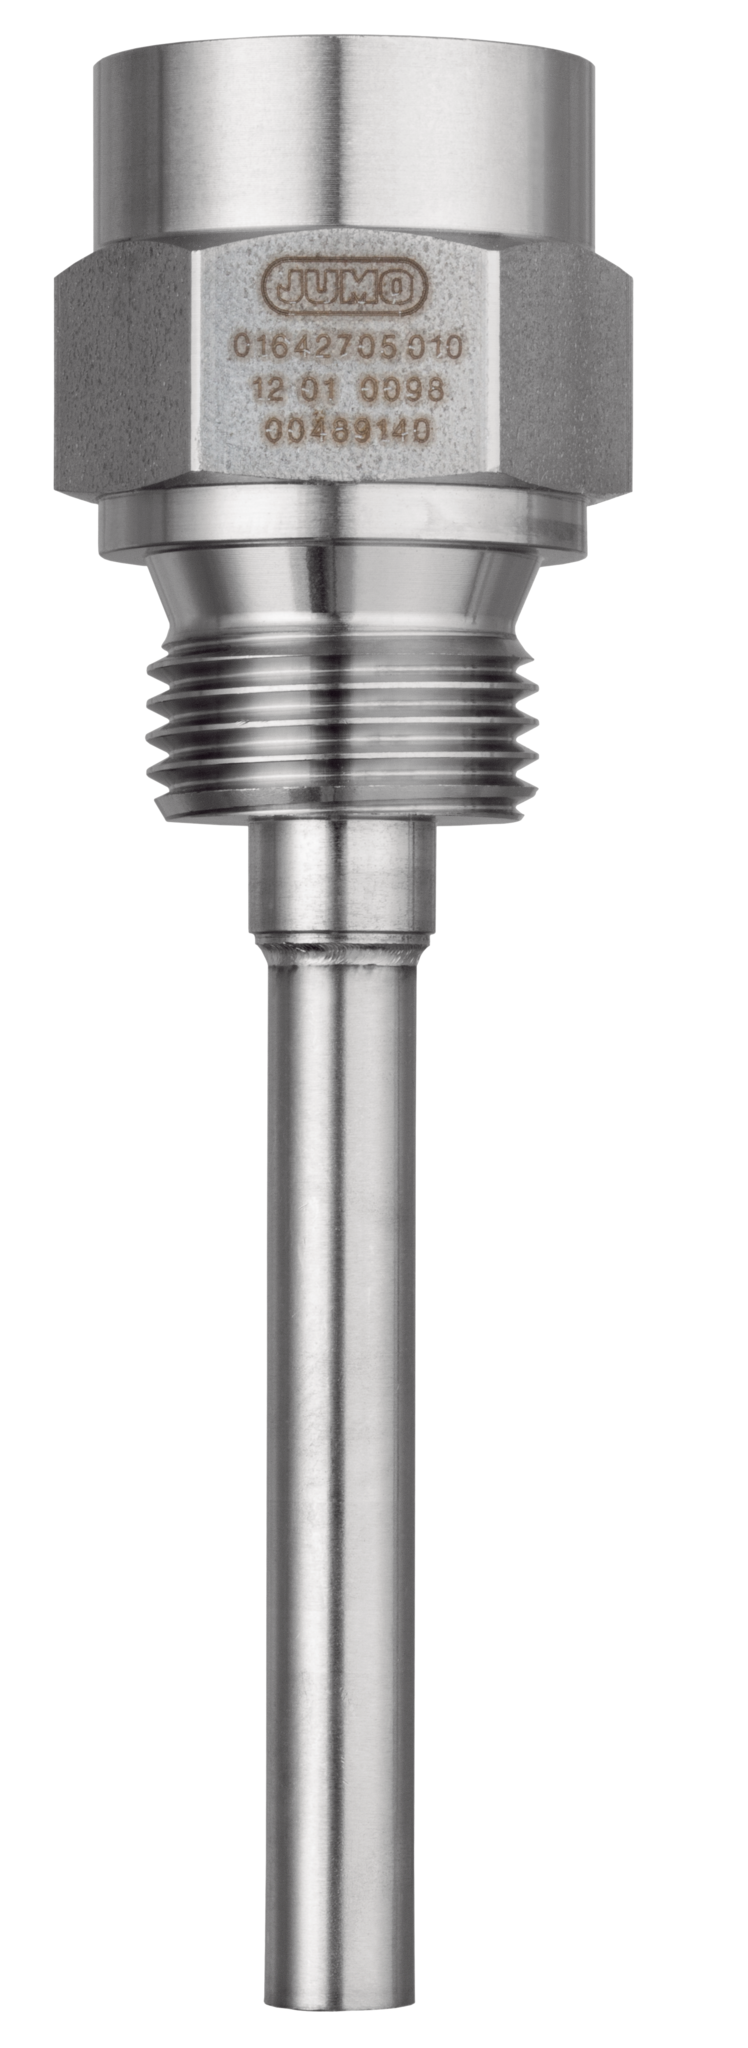 Screw-in thermowells